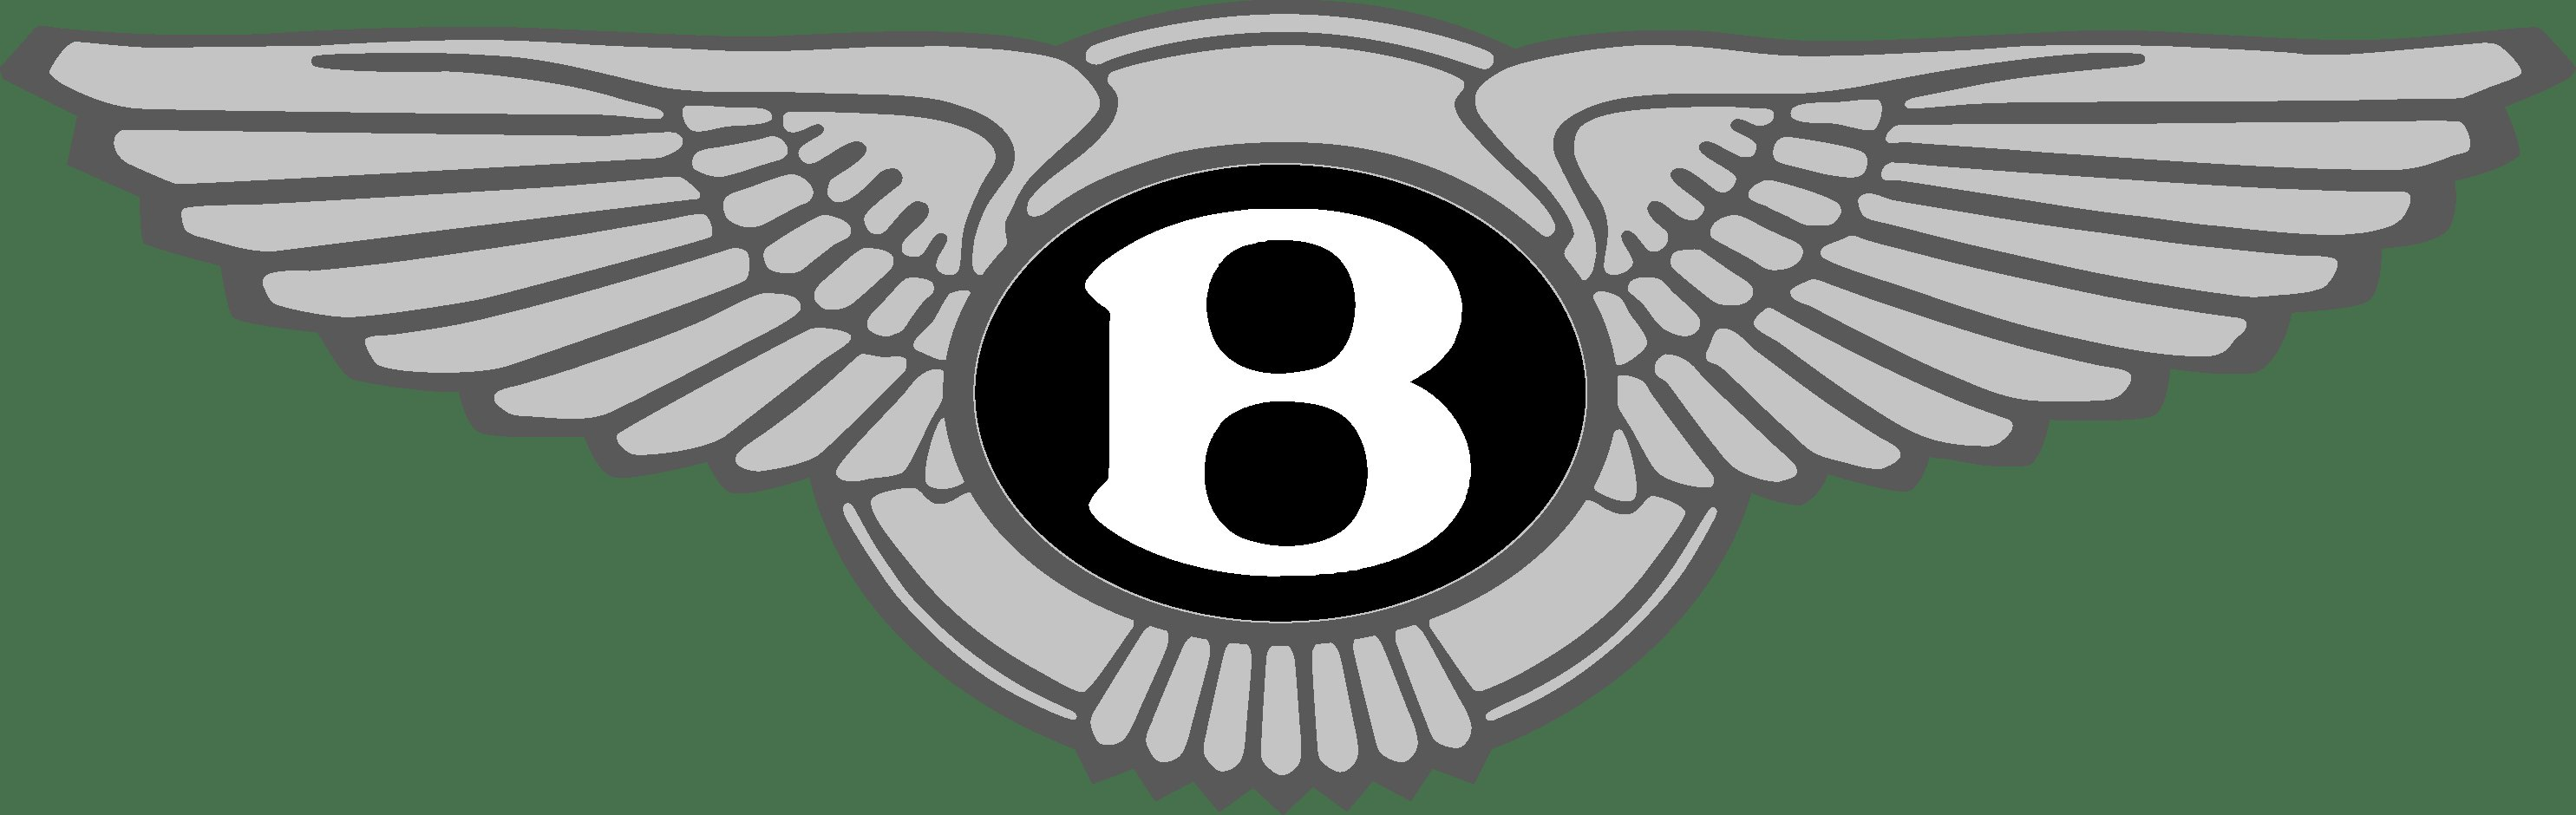 Latest Bentley Logo Vector Icon Template Clipart Free Download